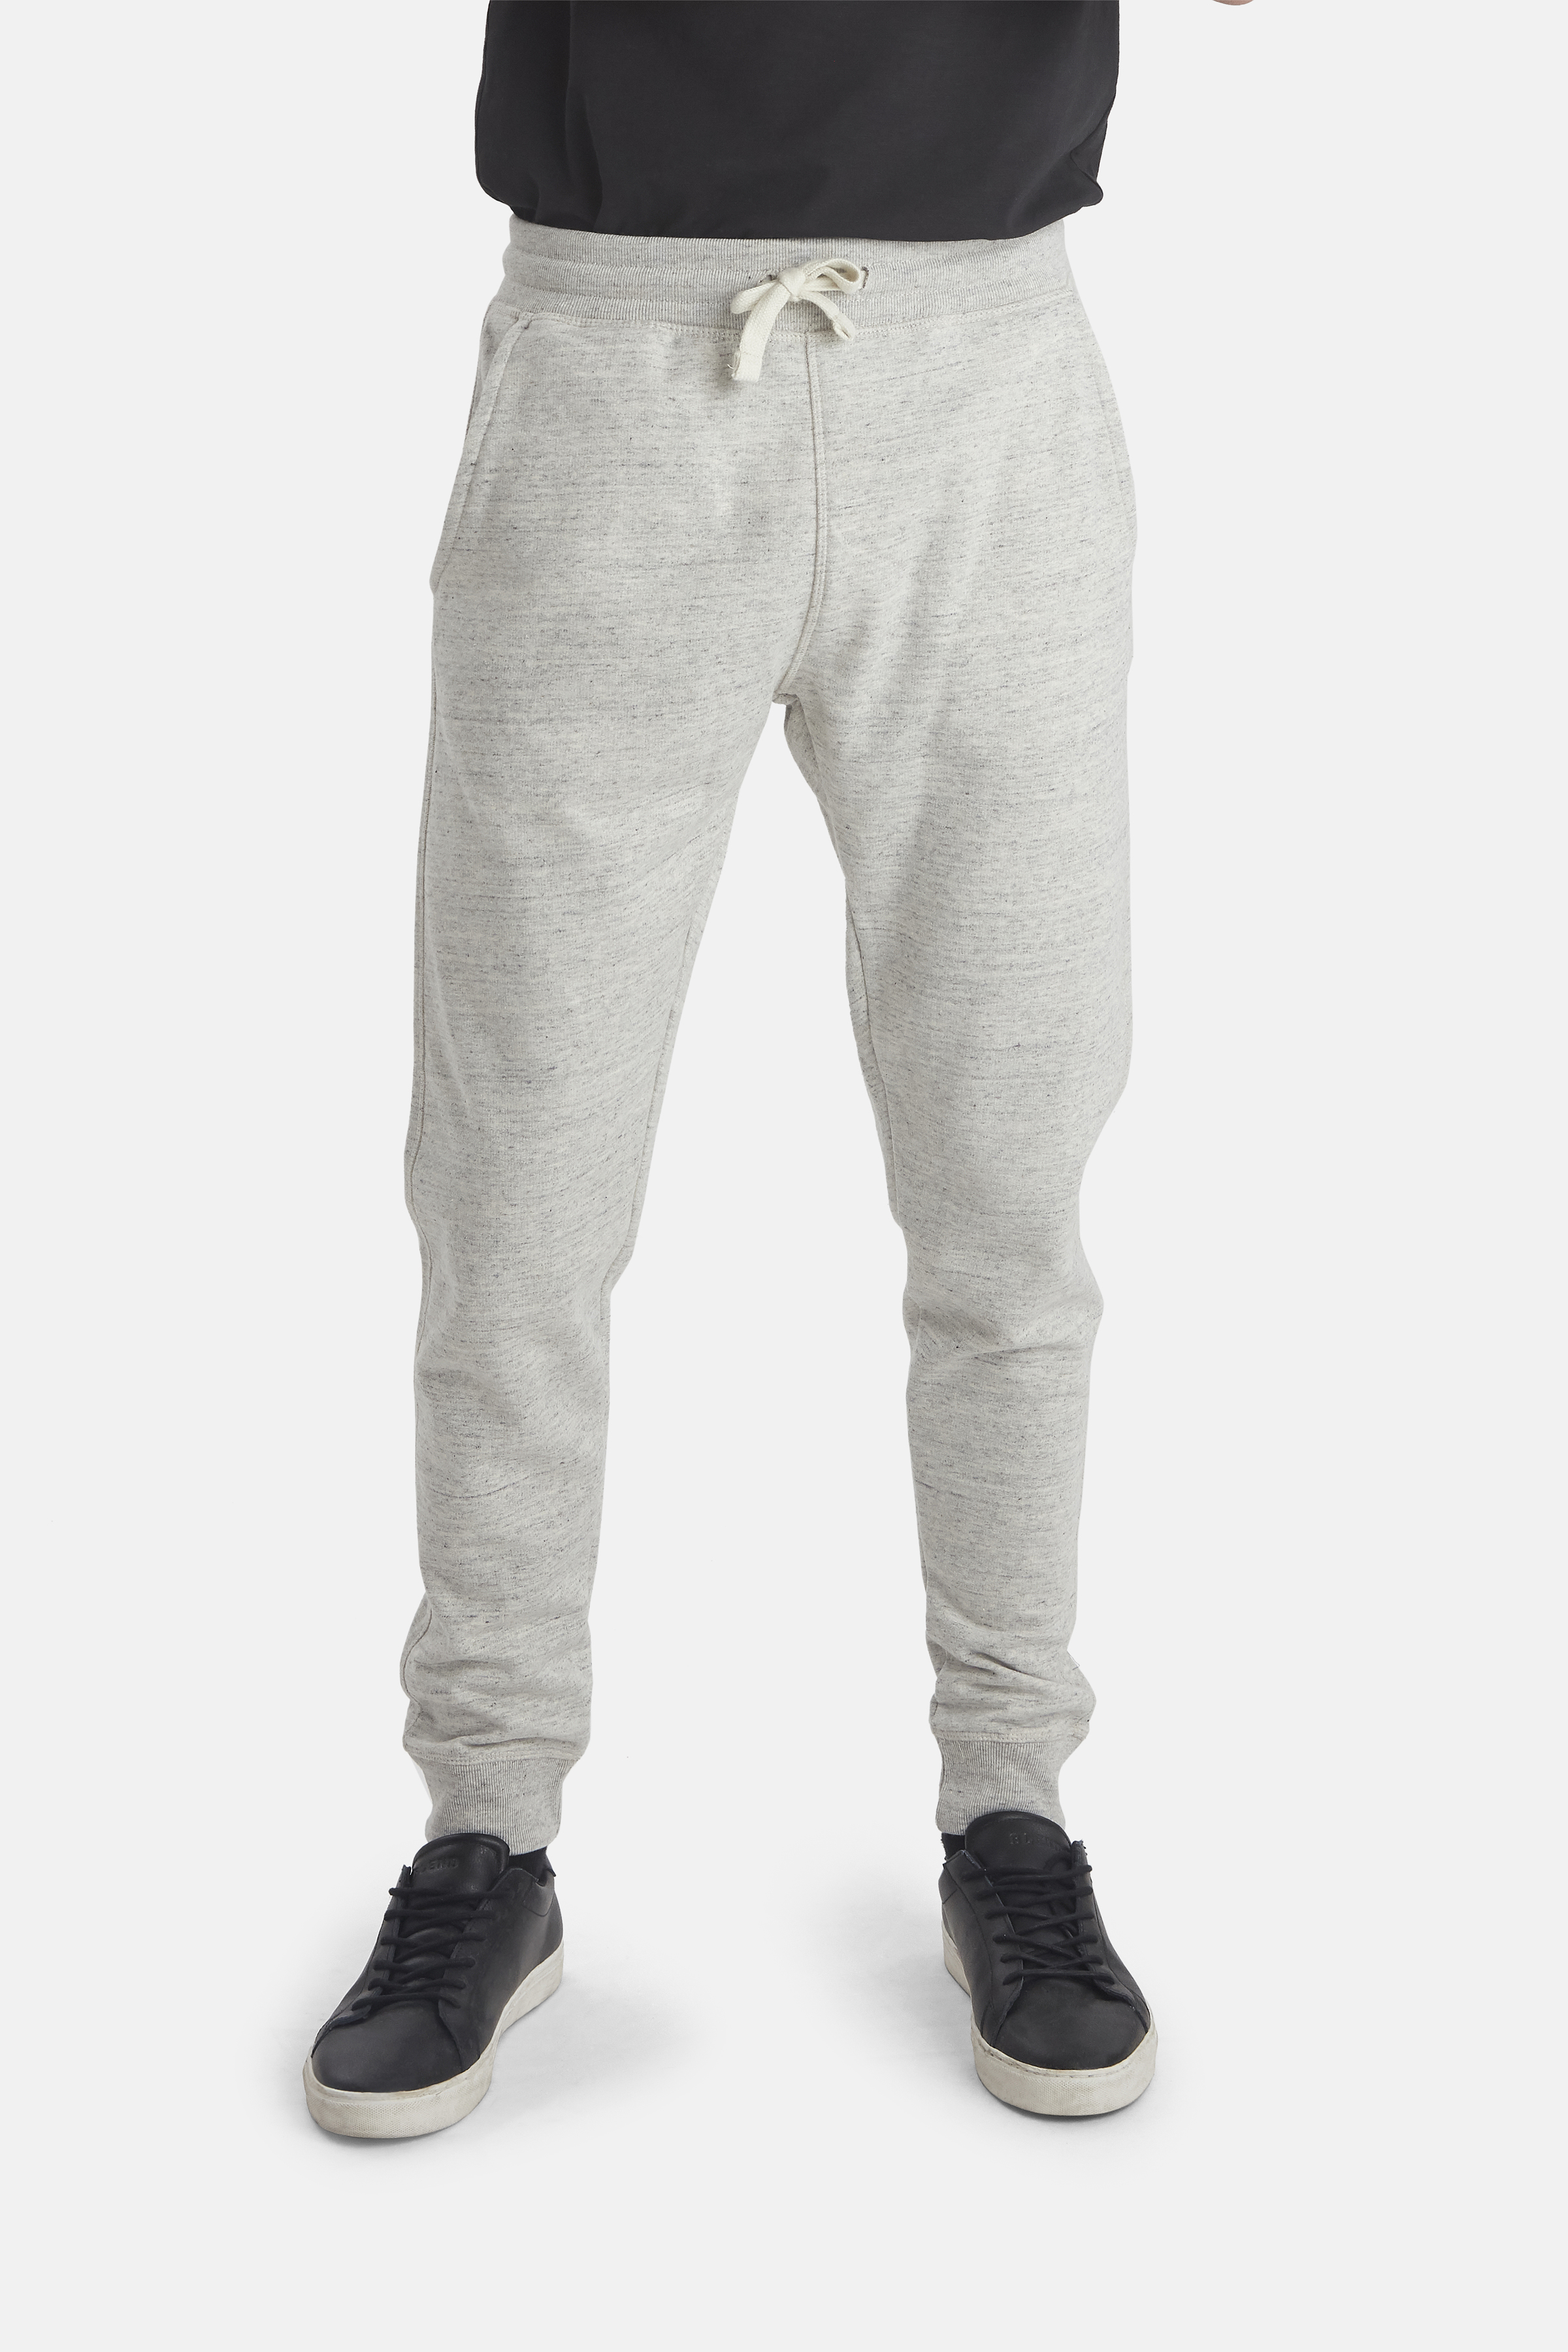 Stone mix Sweatpants – Køb Stone mix Sweatpants fra str. S-3XL her